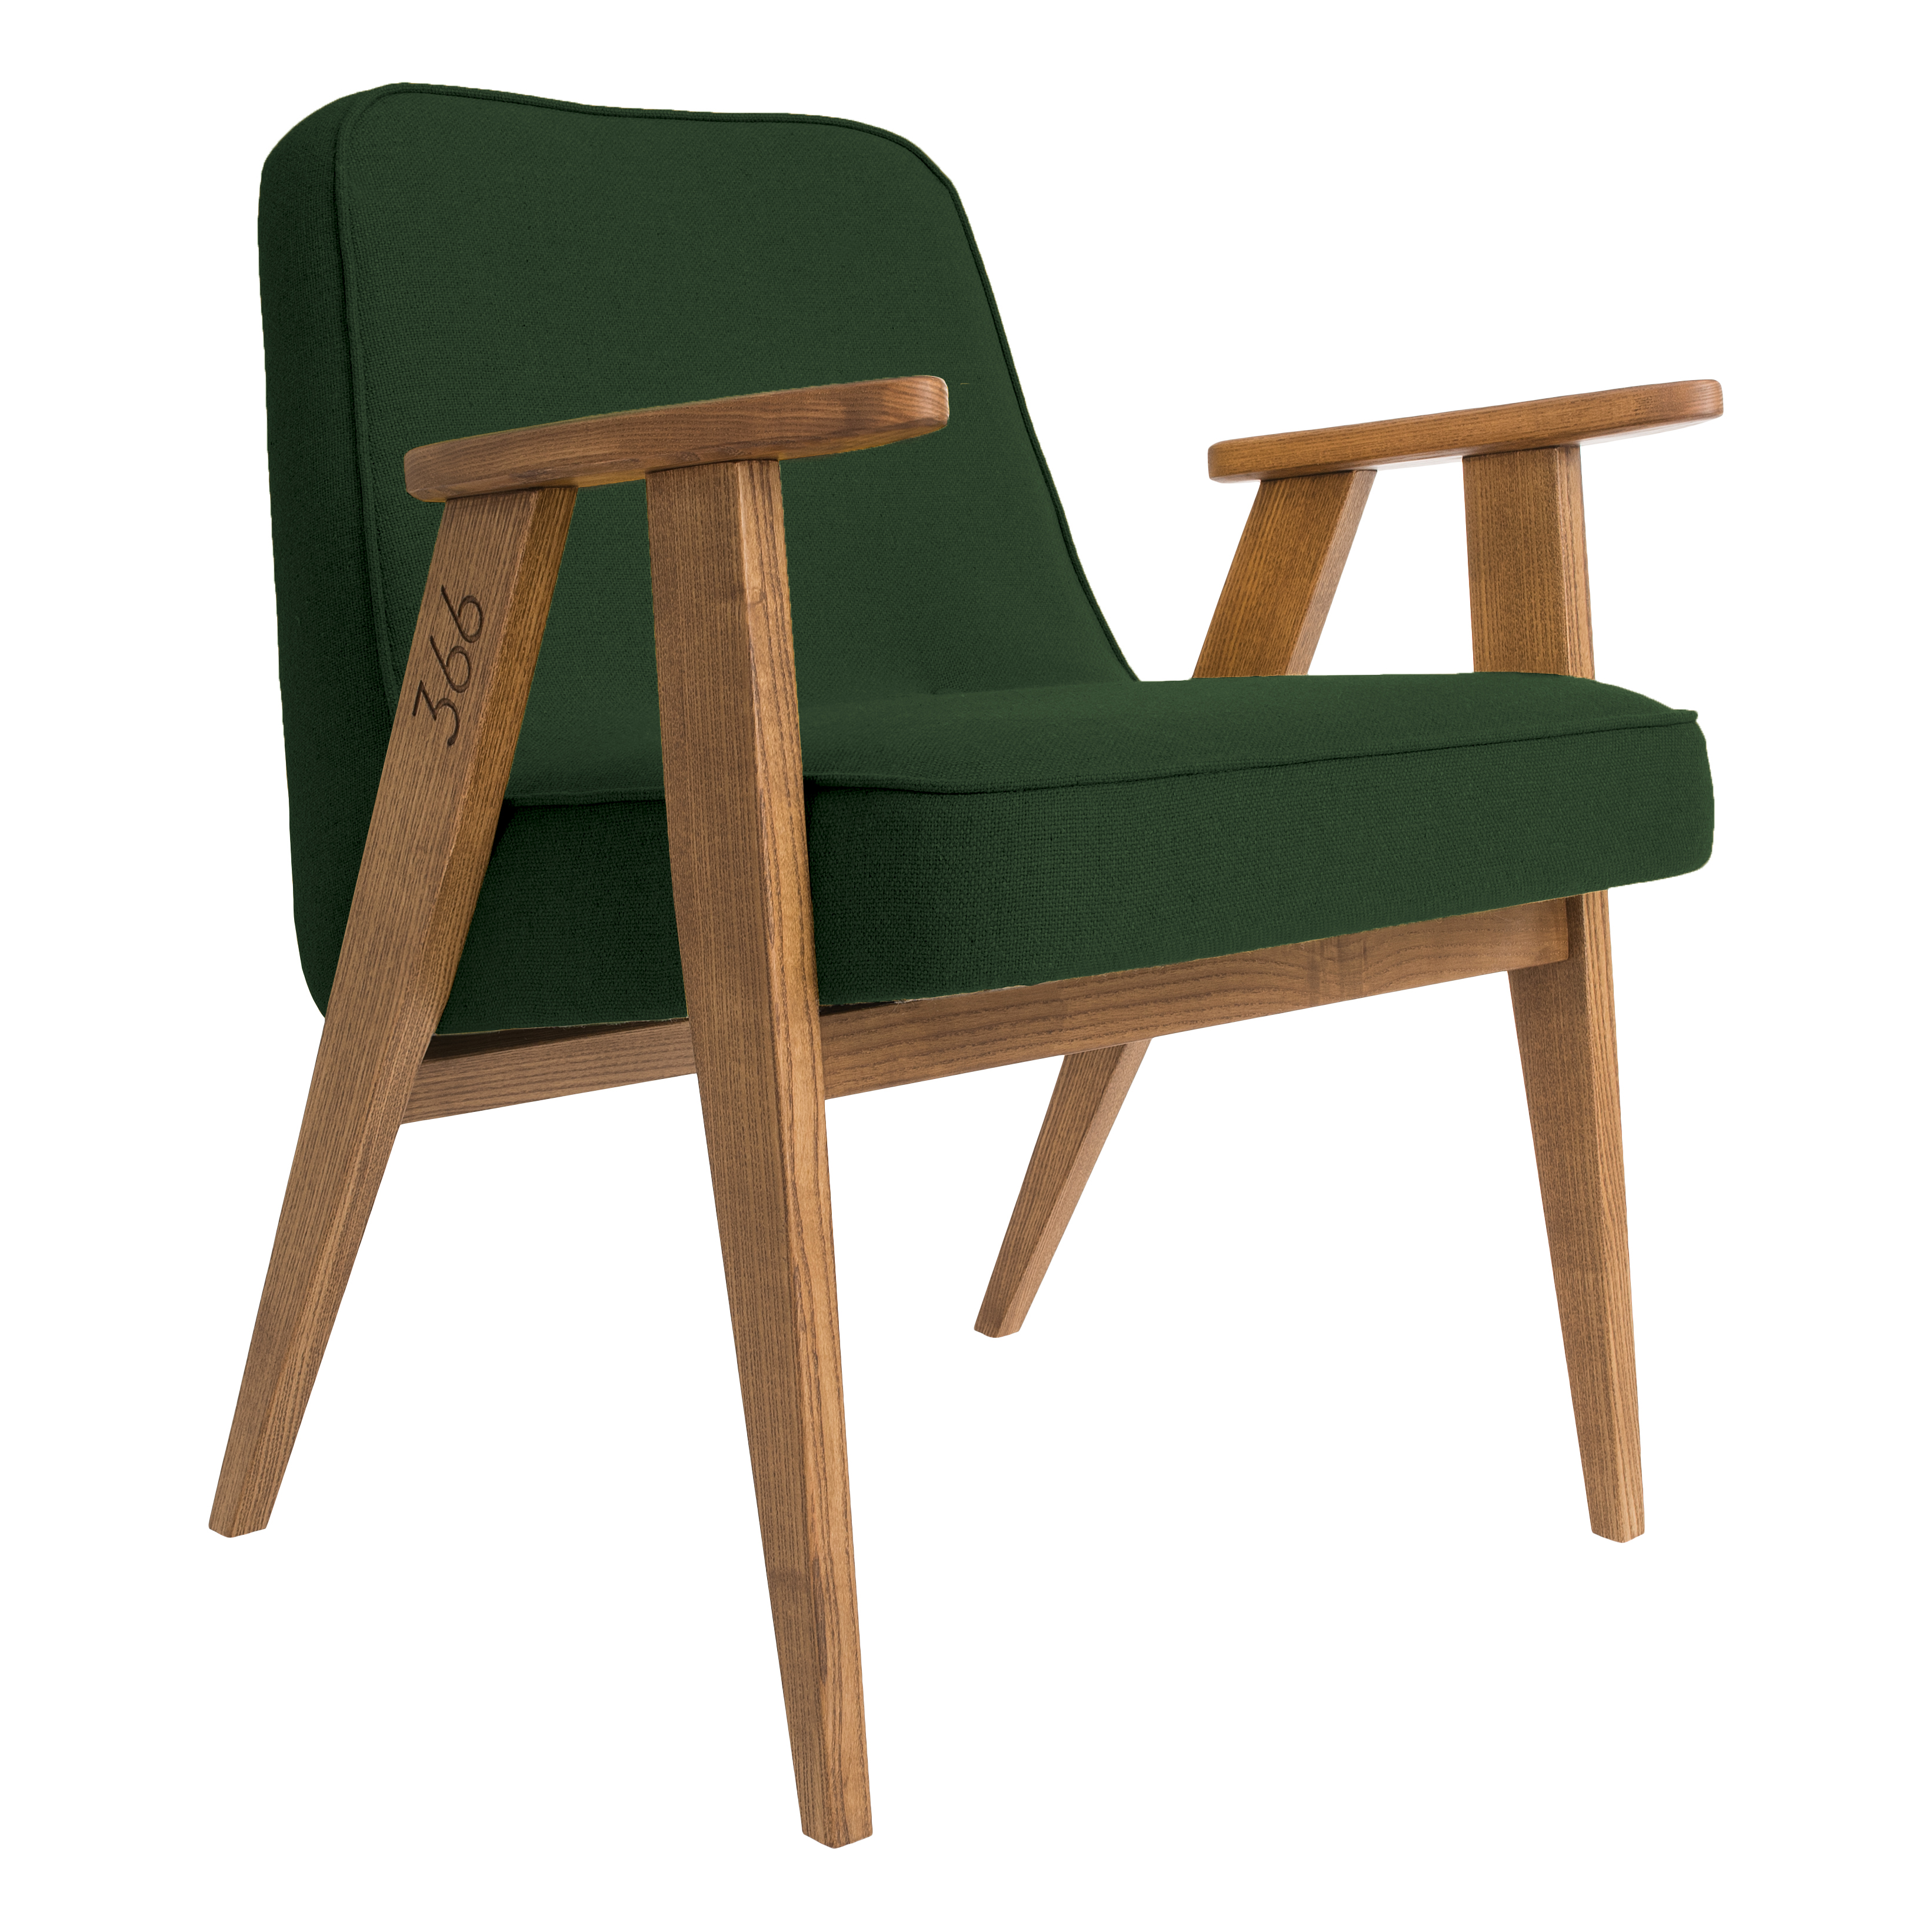 interior-design, furniture, armchairs, 366 EASY CHAIR WOOL - 366 Concept   366 easy chair   Wool 04 Bottle Green   Oak